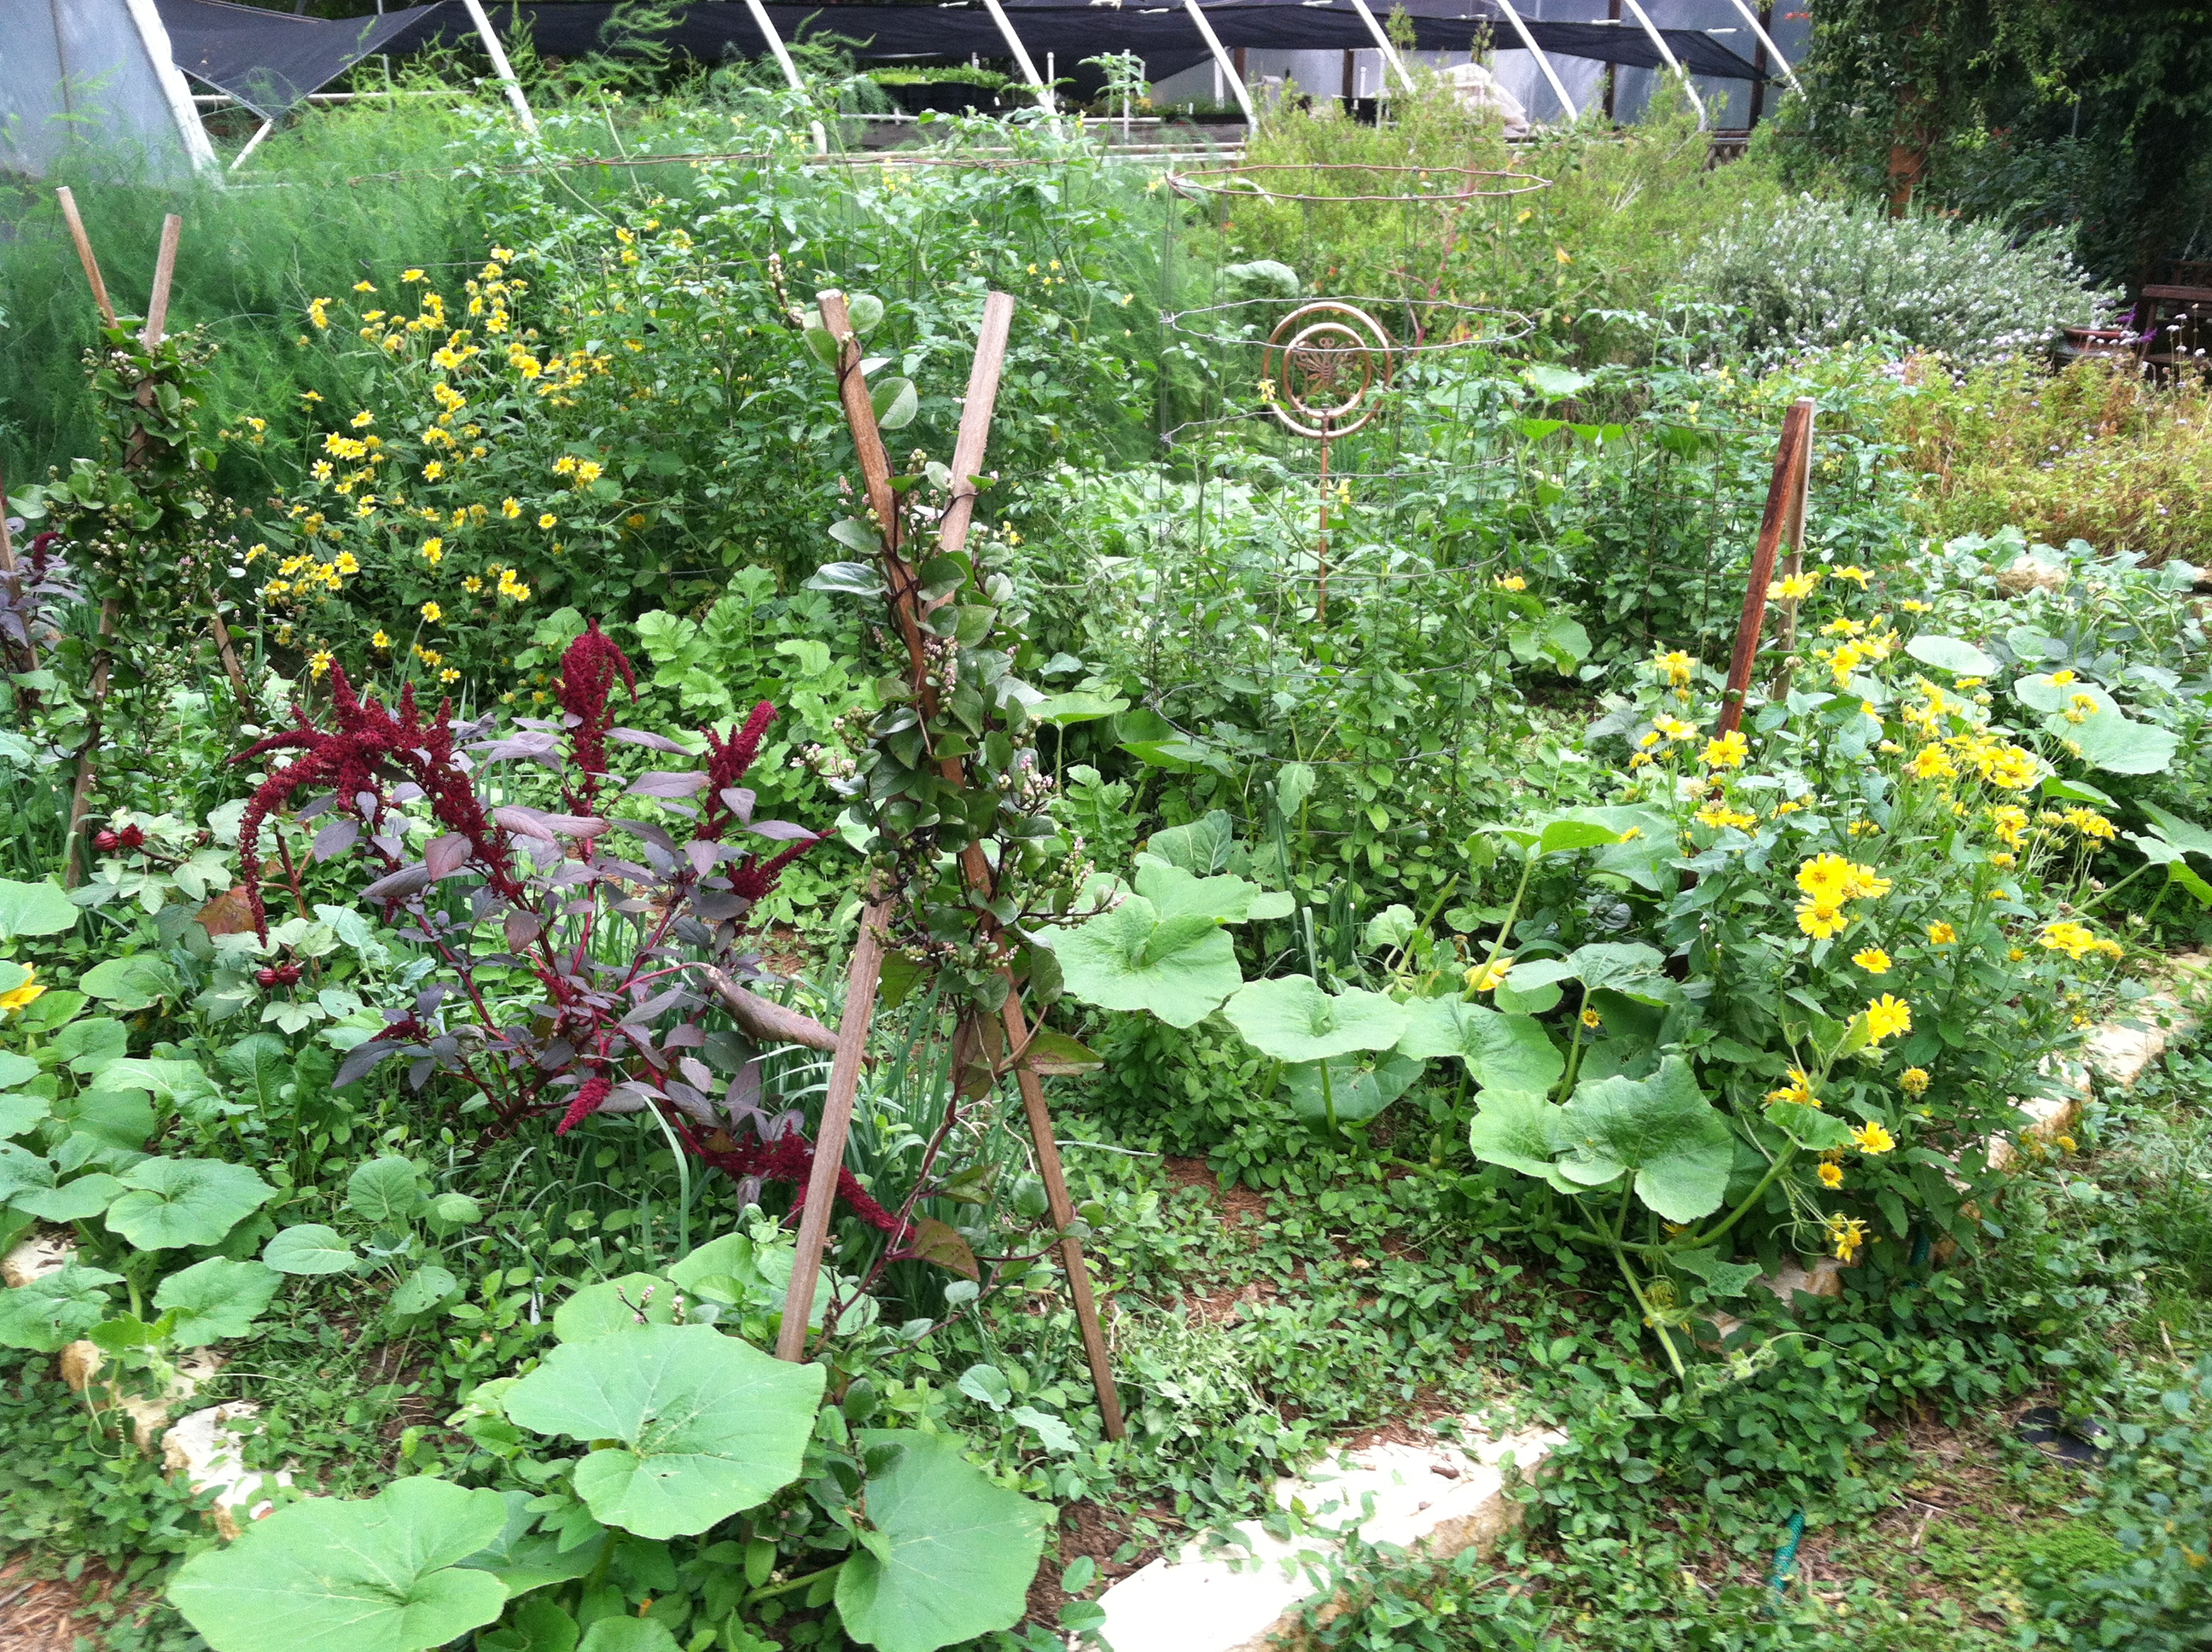 Charming Vegetable, Hummingbird And Butterfly Garden In Late Summer.